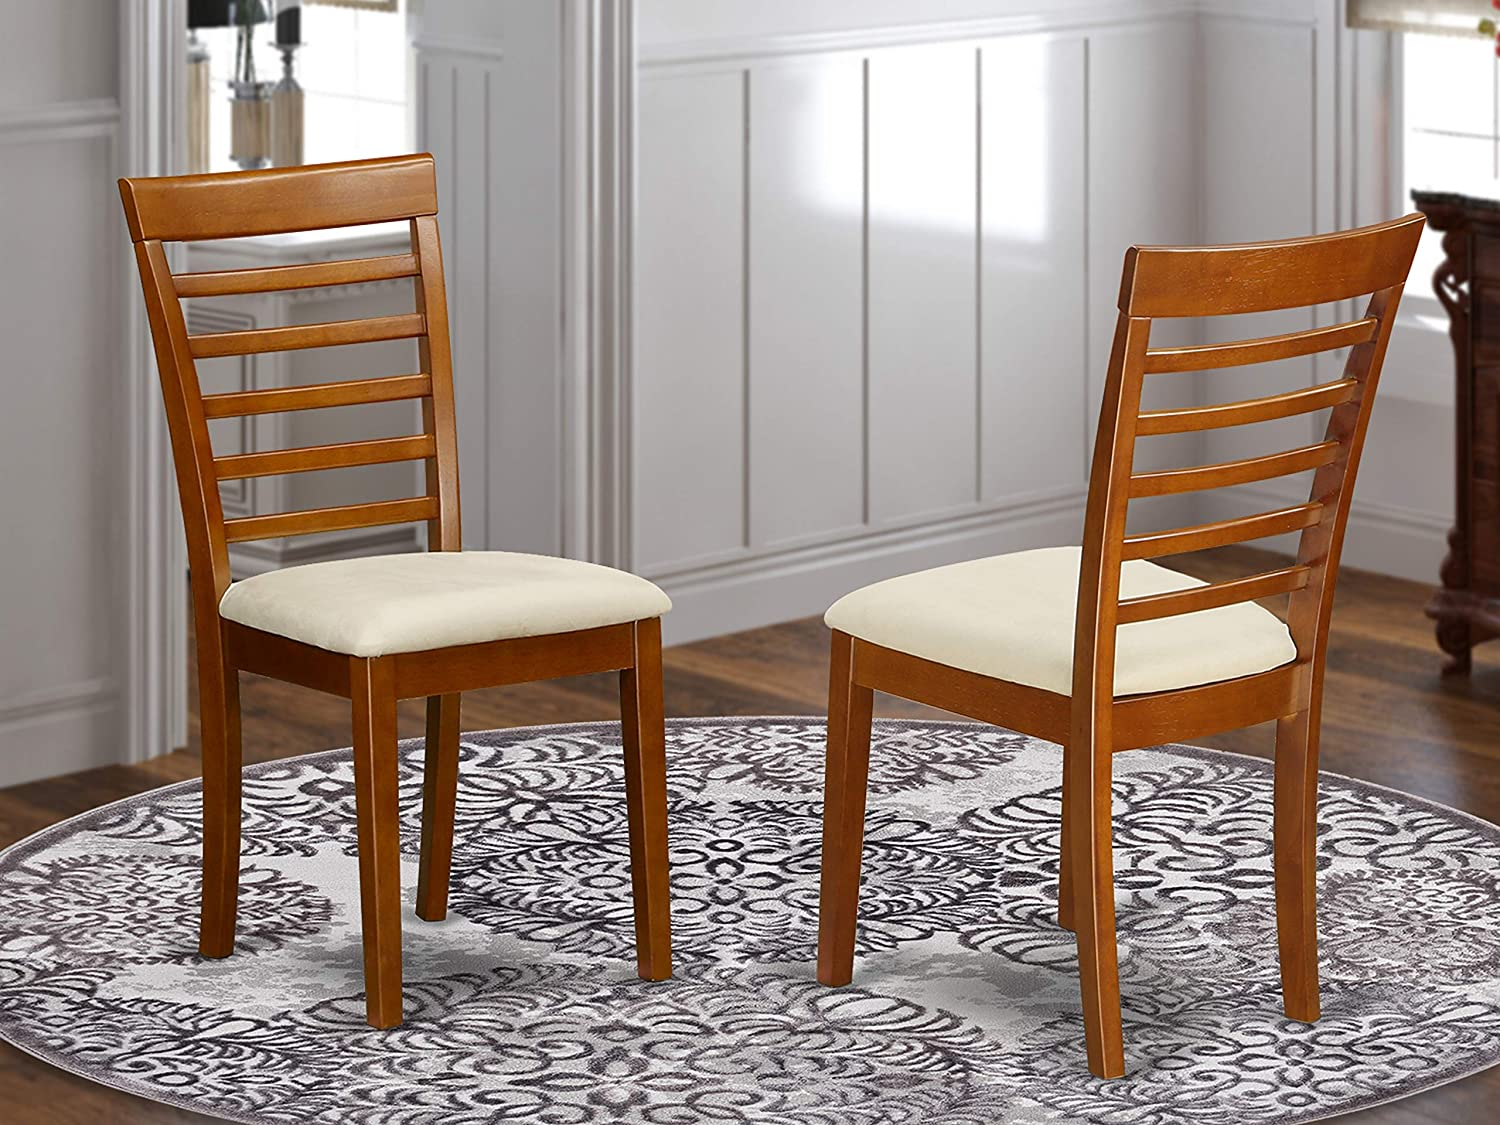 East West Furniture MLC-SBR-C Dining Chair Set with Cushion Seat, Saddle Brown Finish, Set of 2